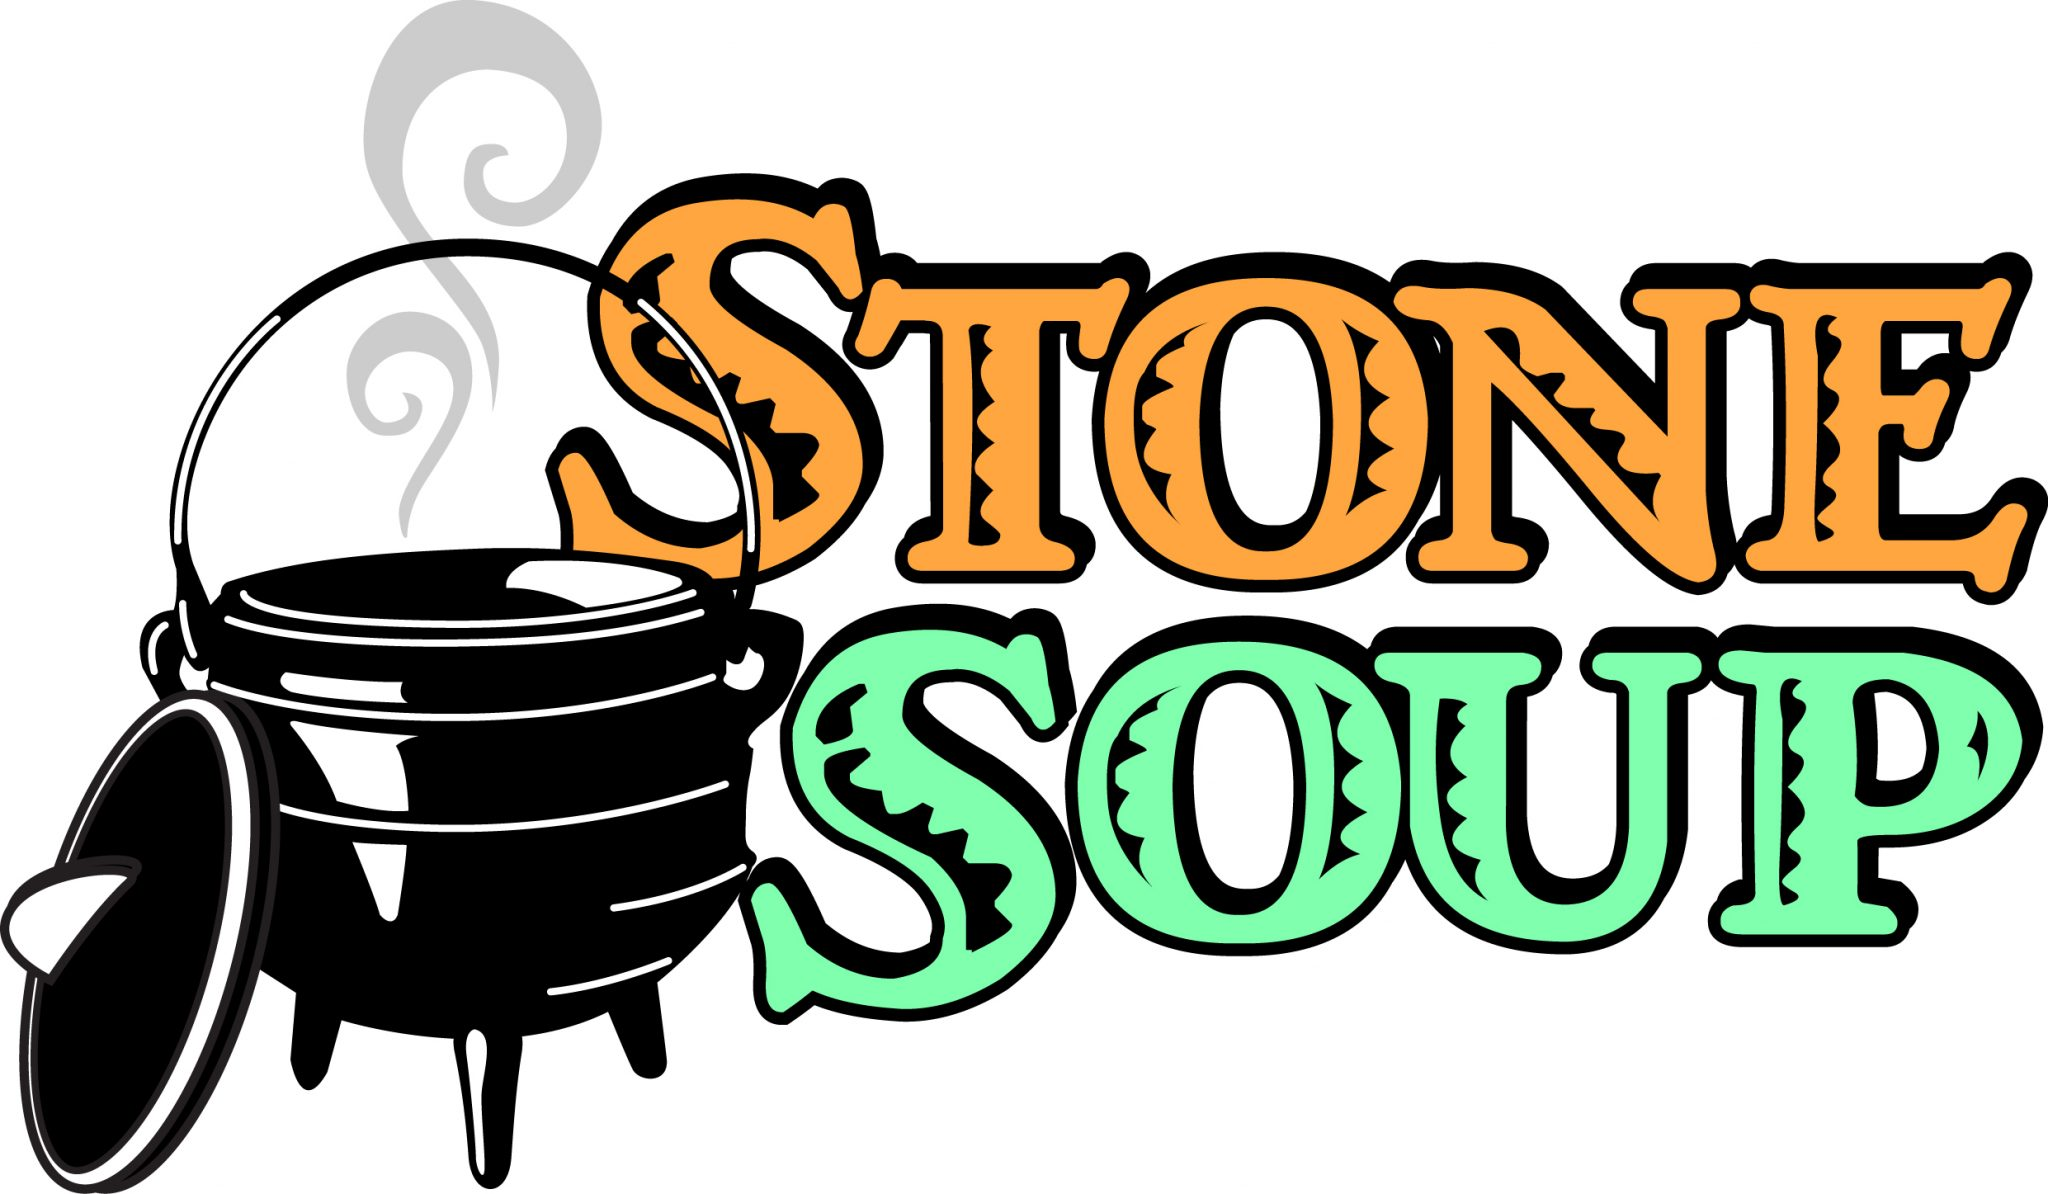 Stone Soup | ARIEL Theatrical